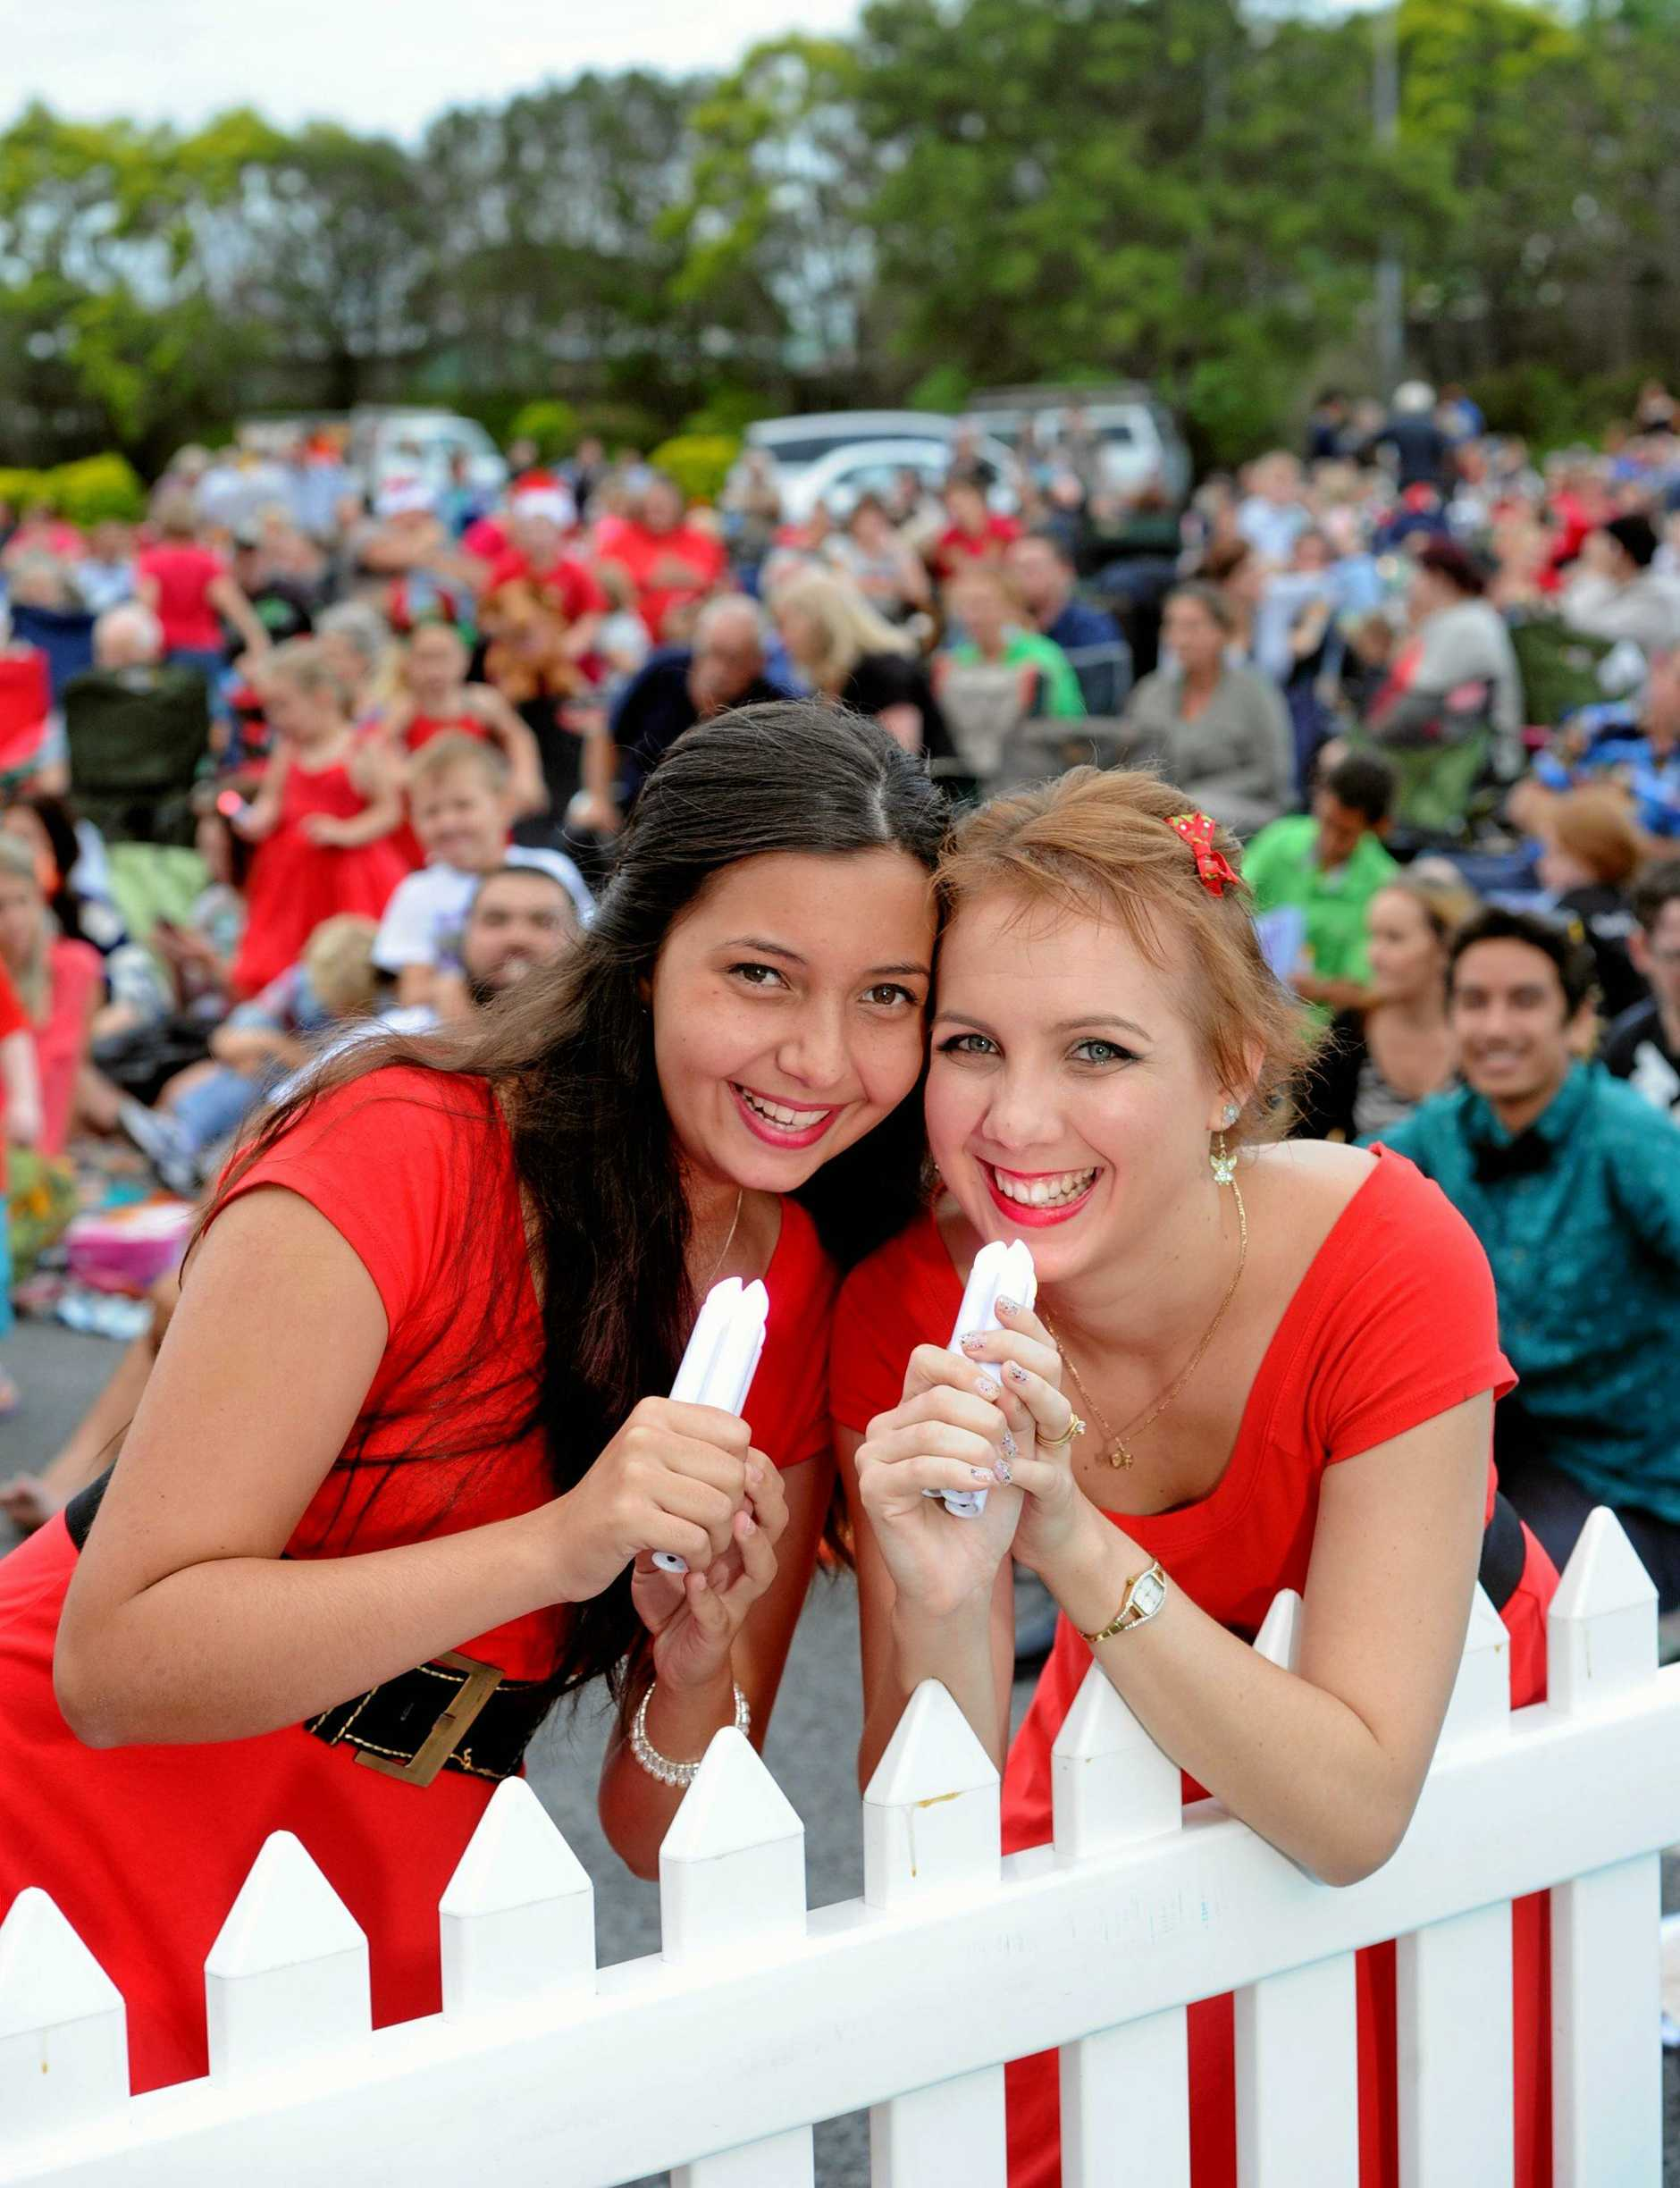 Carols by Candlelight in the Brolga Theatre grounds- Singers Sarah-Jane Laksham and Kaitlun Spalding from the Maryborough Show Choir ready to perform on stage.  Photo : Robyne Cuerel / Fraser Coast Chronicle